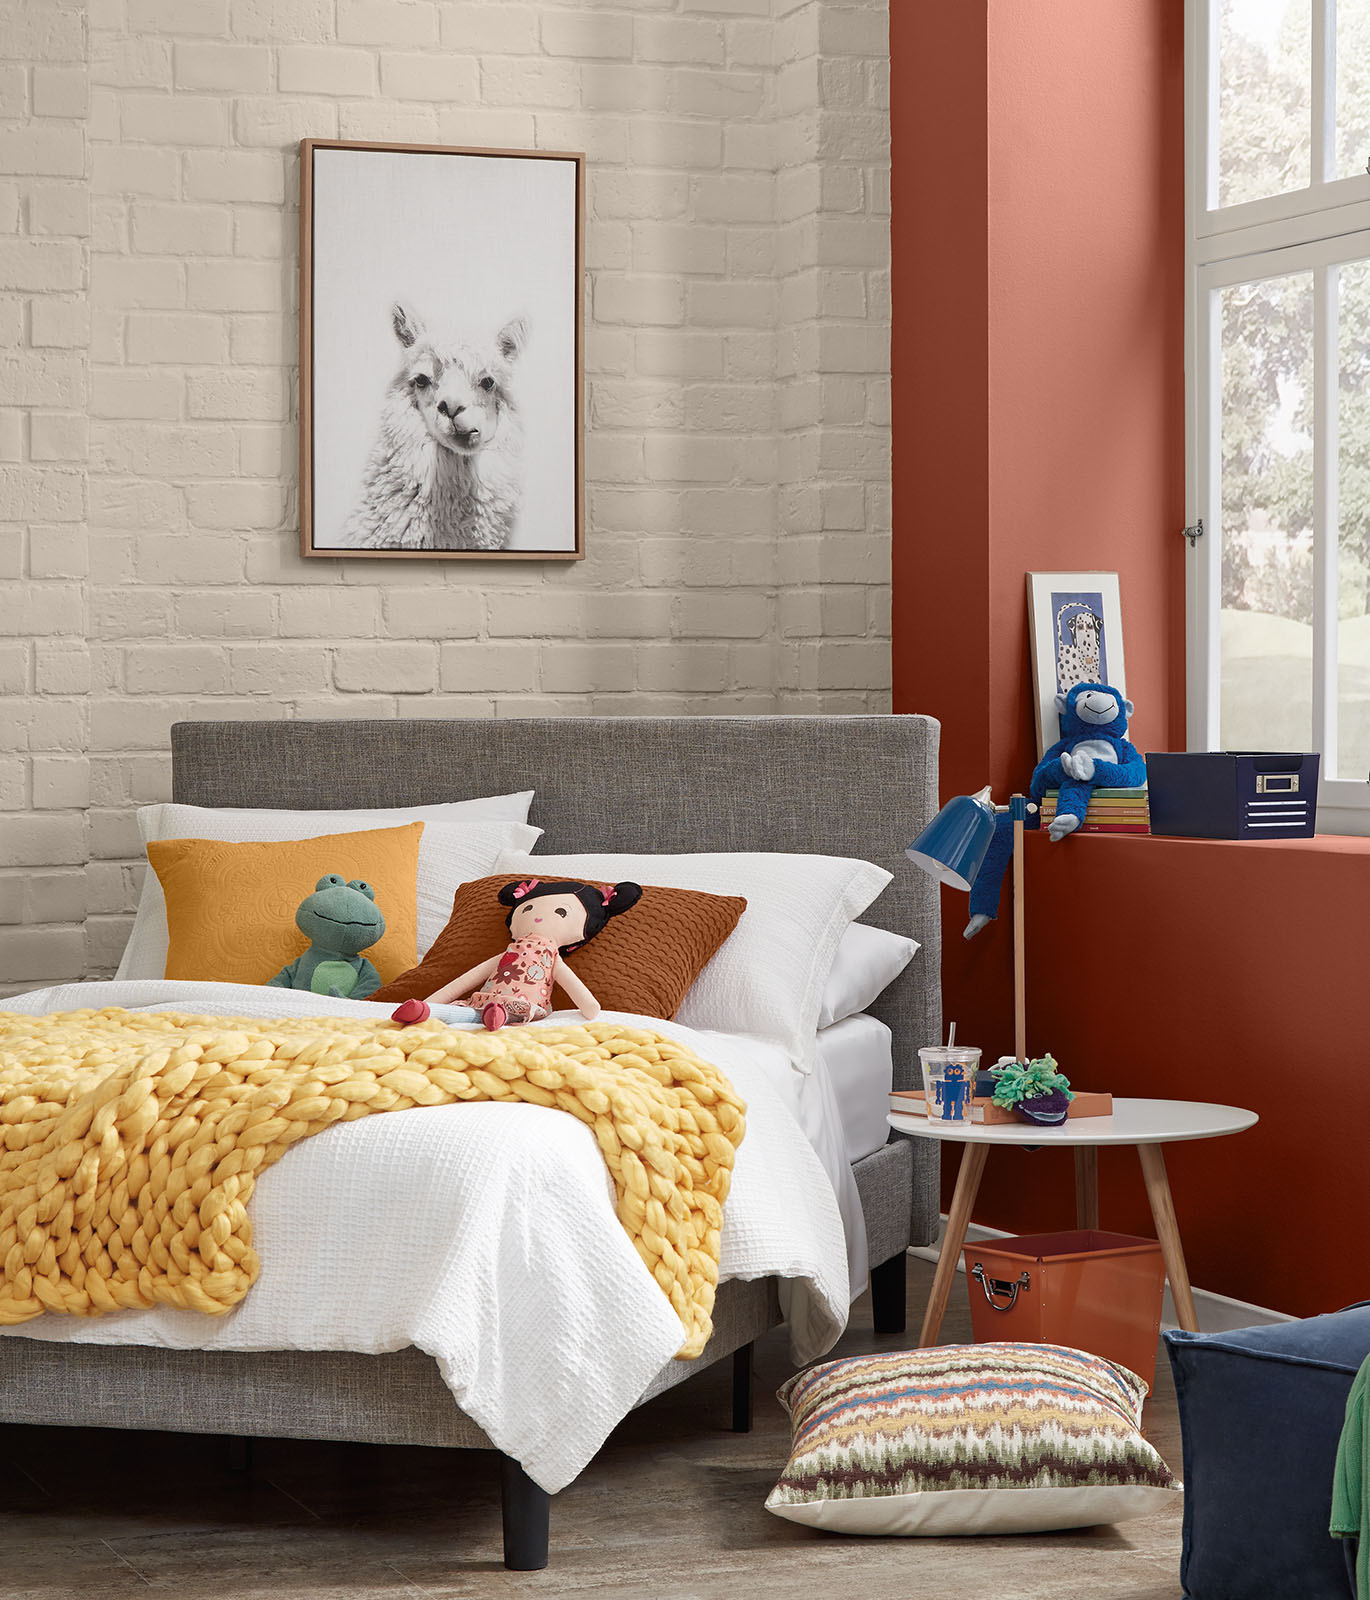 A child's bedroom with cream colored painted brick walls. The accent wall in painted in a dark orange color. The feeling of the room is cheerful.